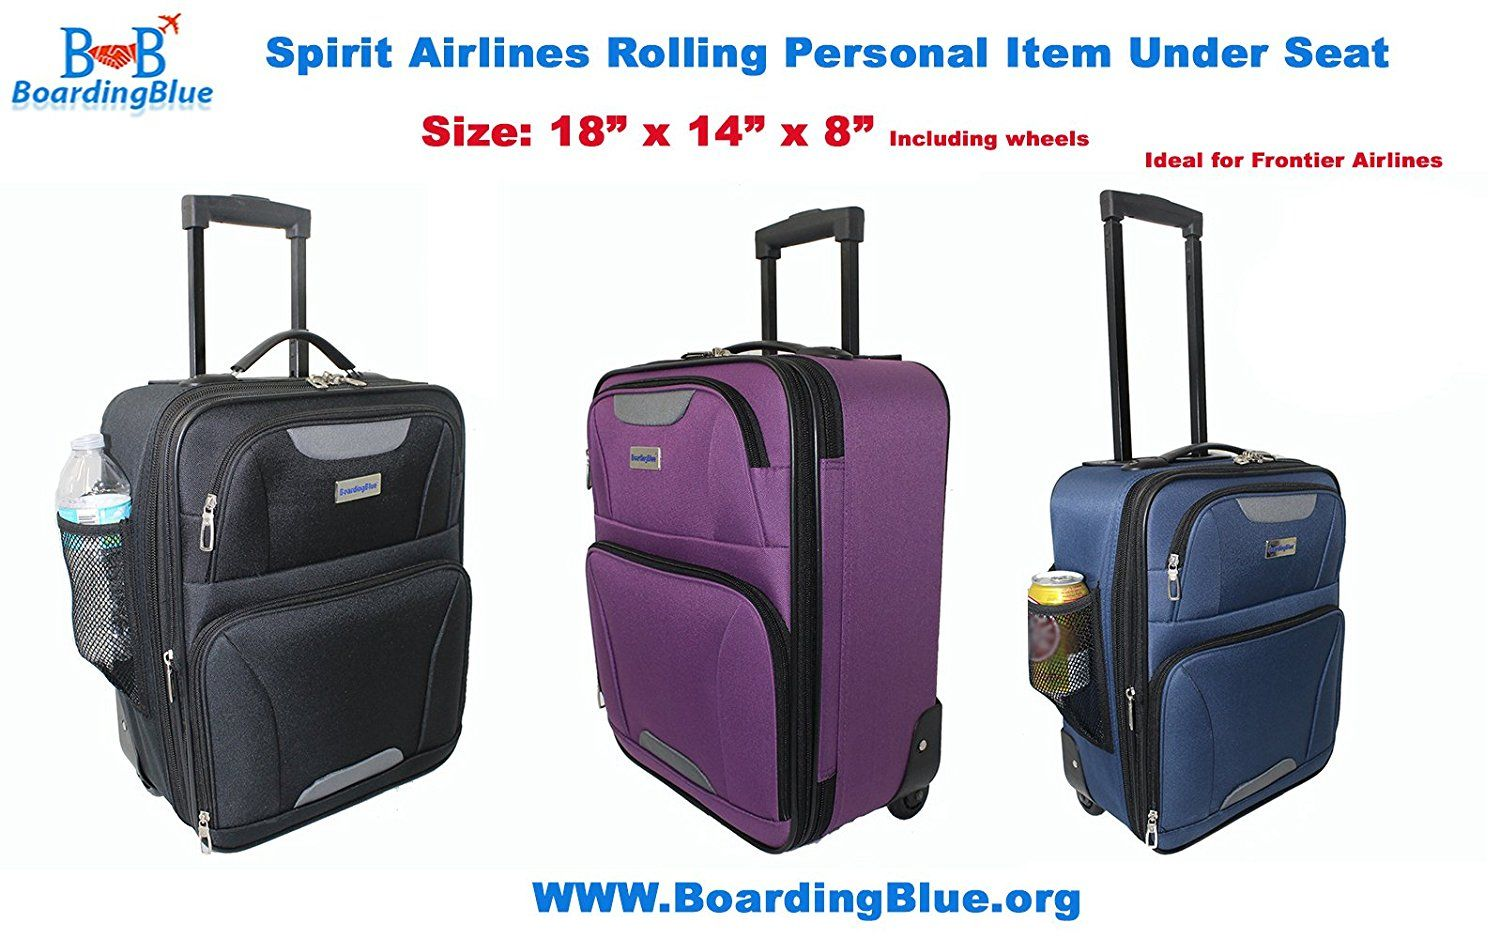 American Airlines Personal Item United Airlines And